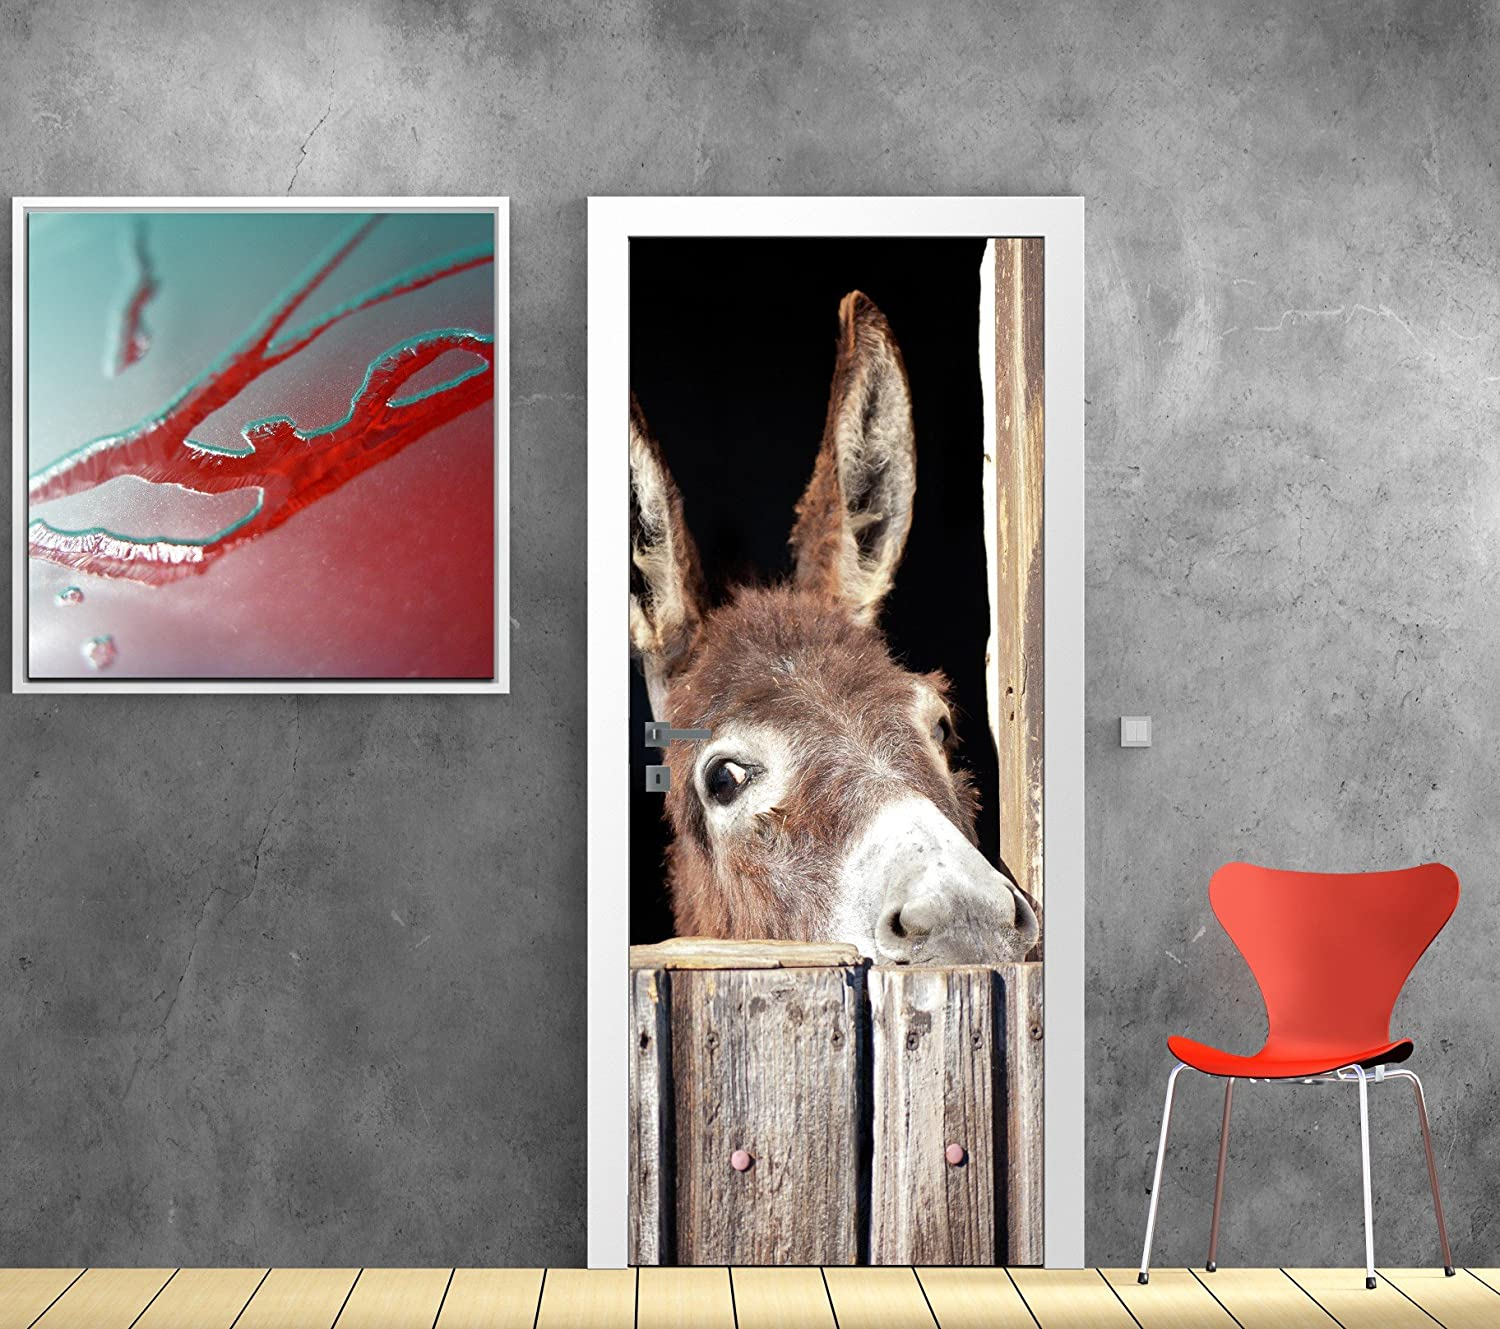 Donkey Design Door Sticker, Ref 712, 63x204cm Stickersnews